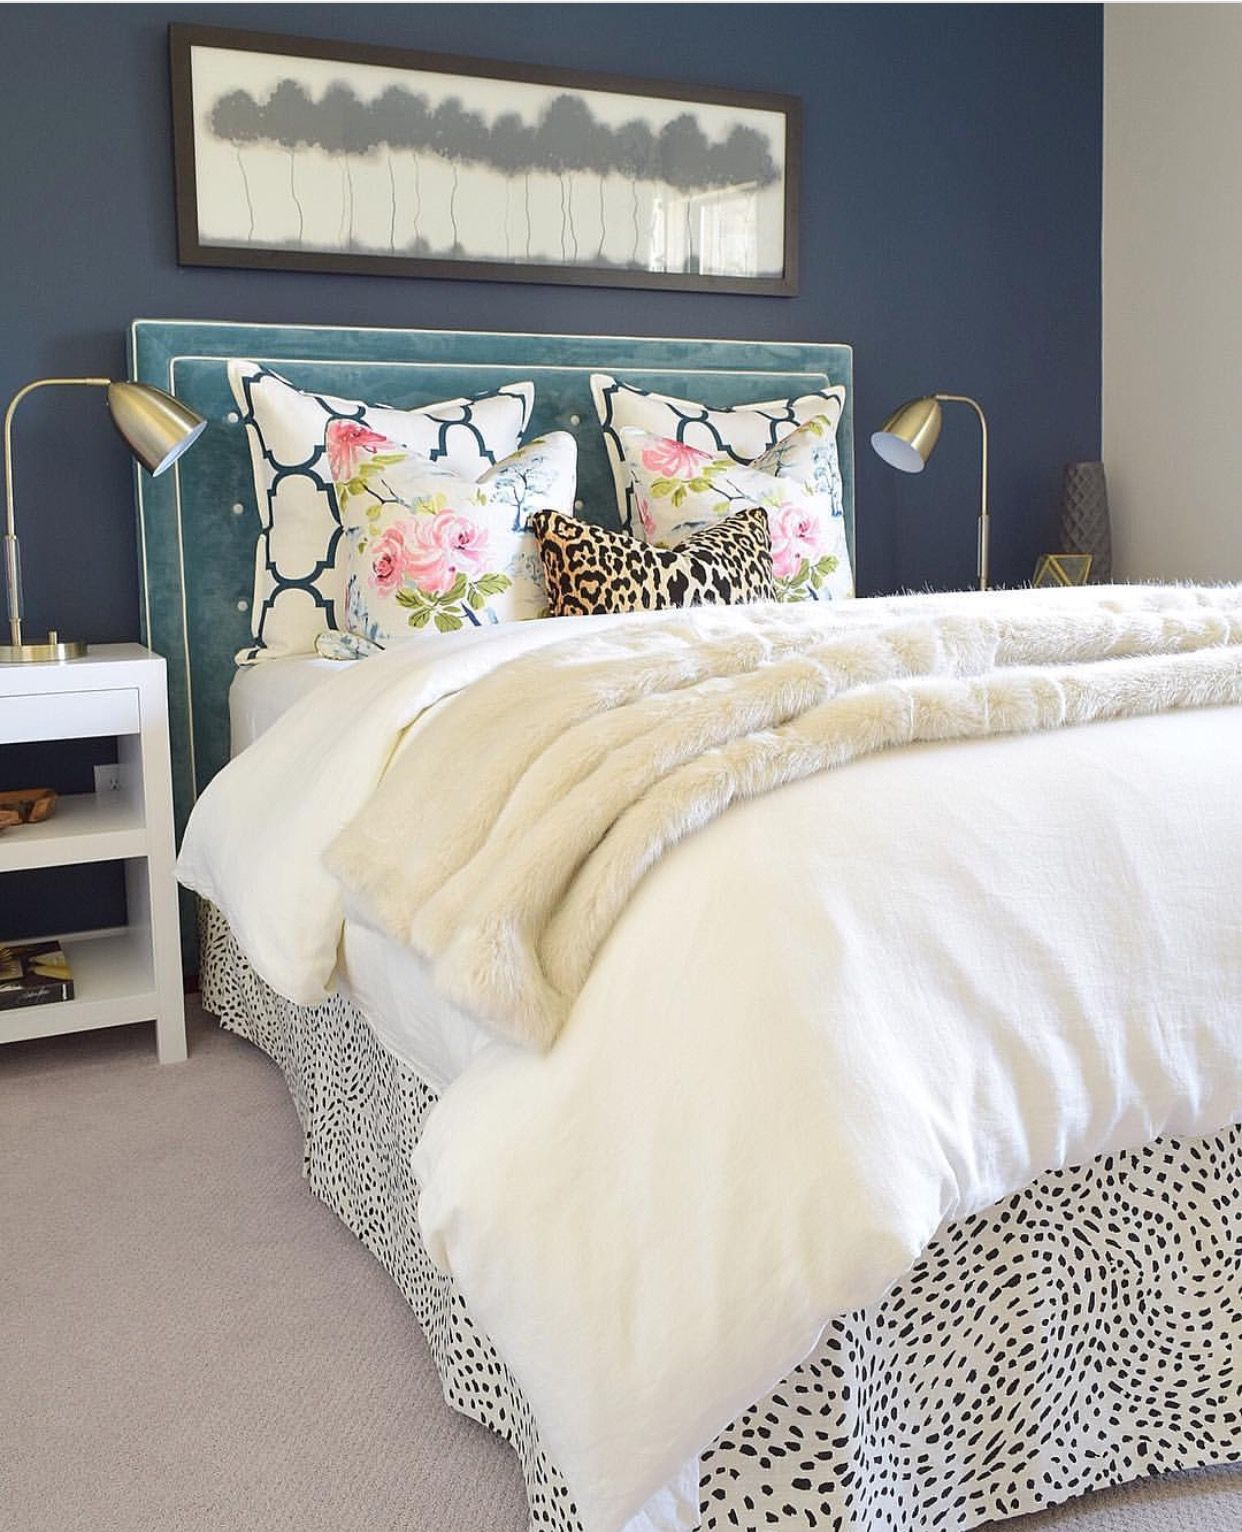 Pin By Marissa Payton Carothers On Master Bedroom Elegant Bedroom Decor Home Decor Bedroom Guest Bedroom Design